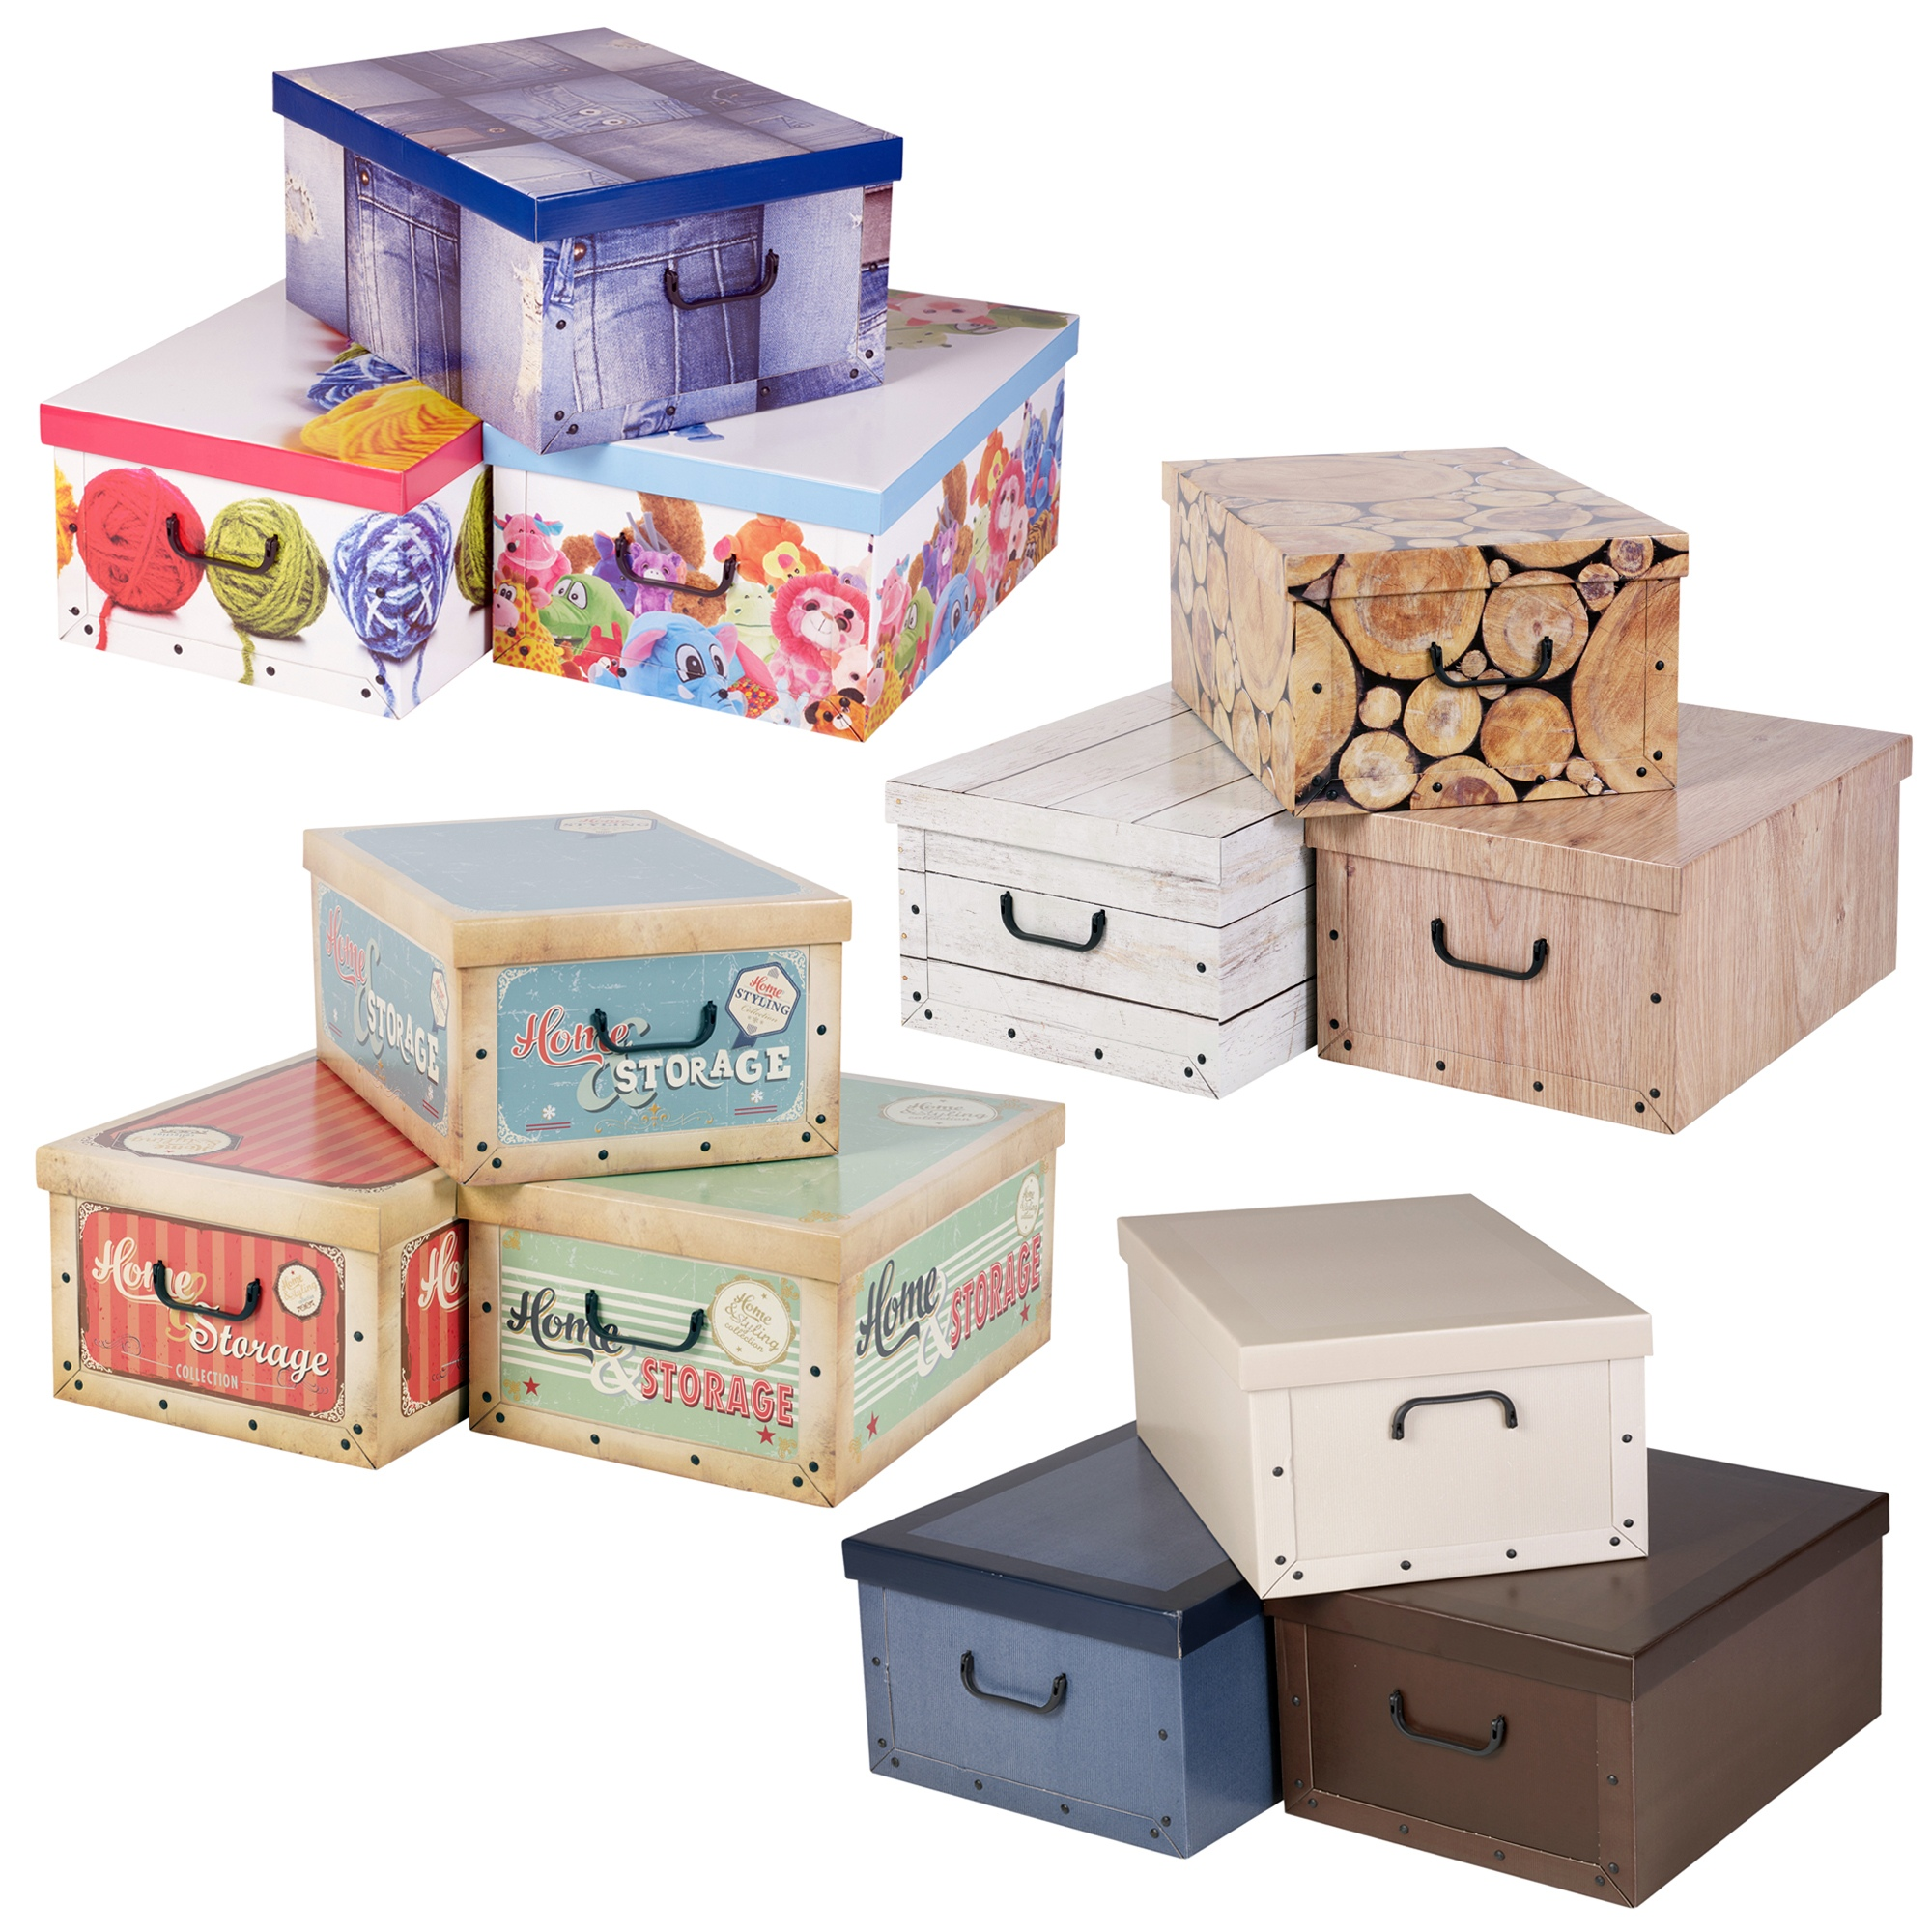 Decorative Boxes Uk: 3 Collapsible Underbed Cardboard Storage Boxes Elegant